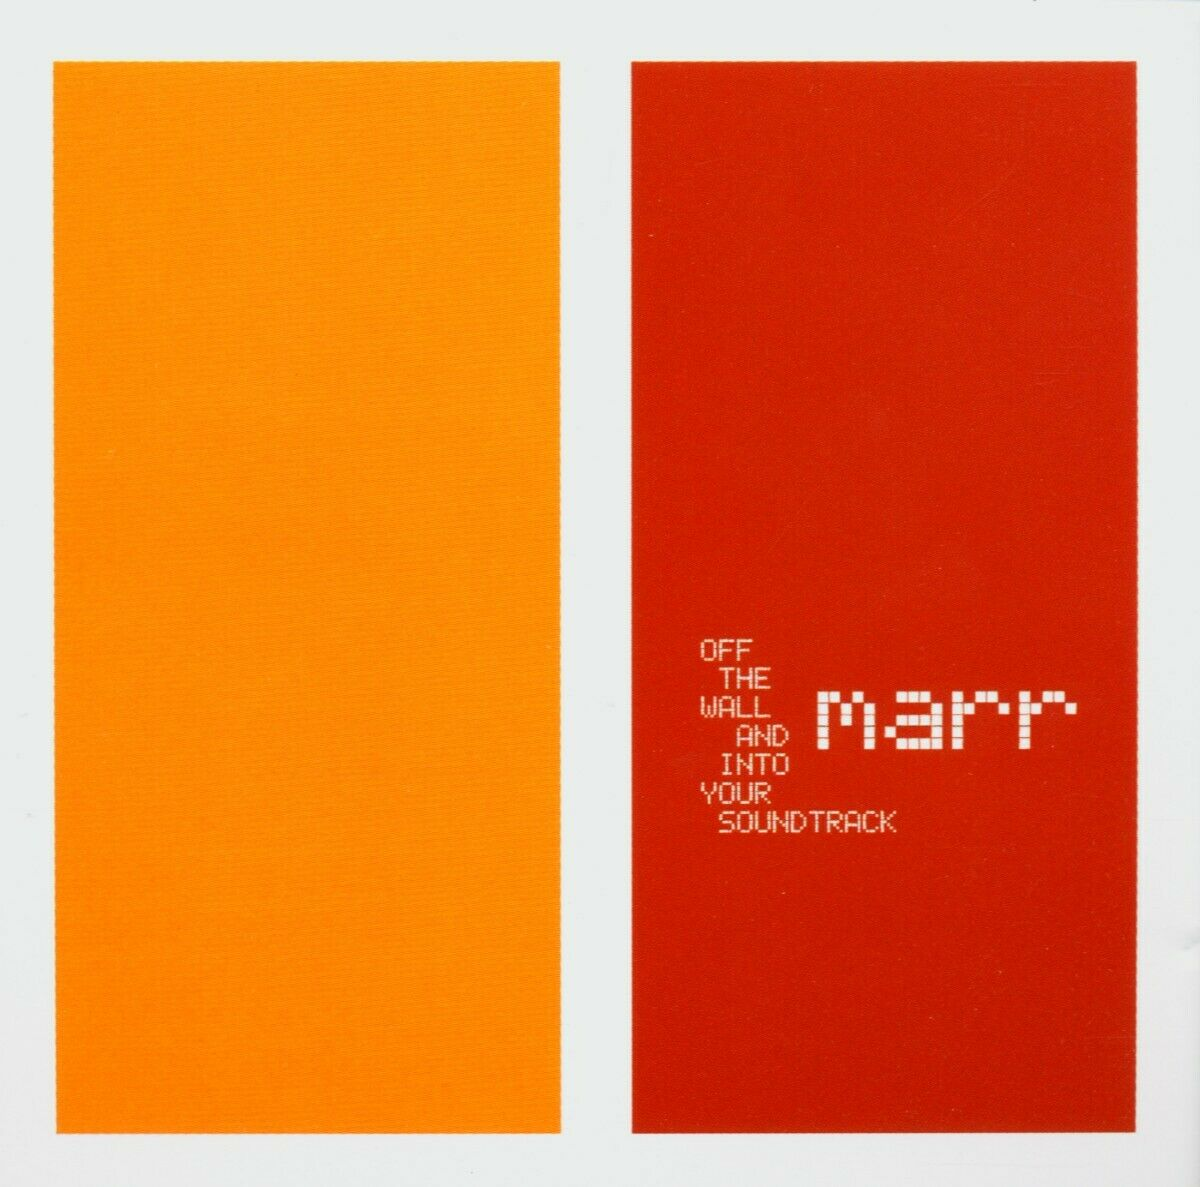 Marr - Off The Wall And Into Your Soundtrack